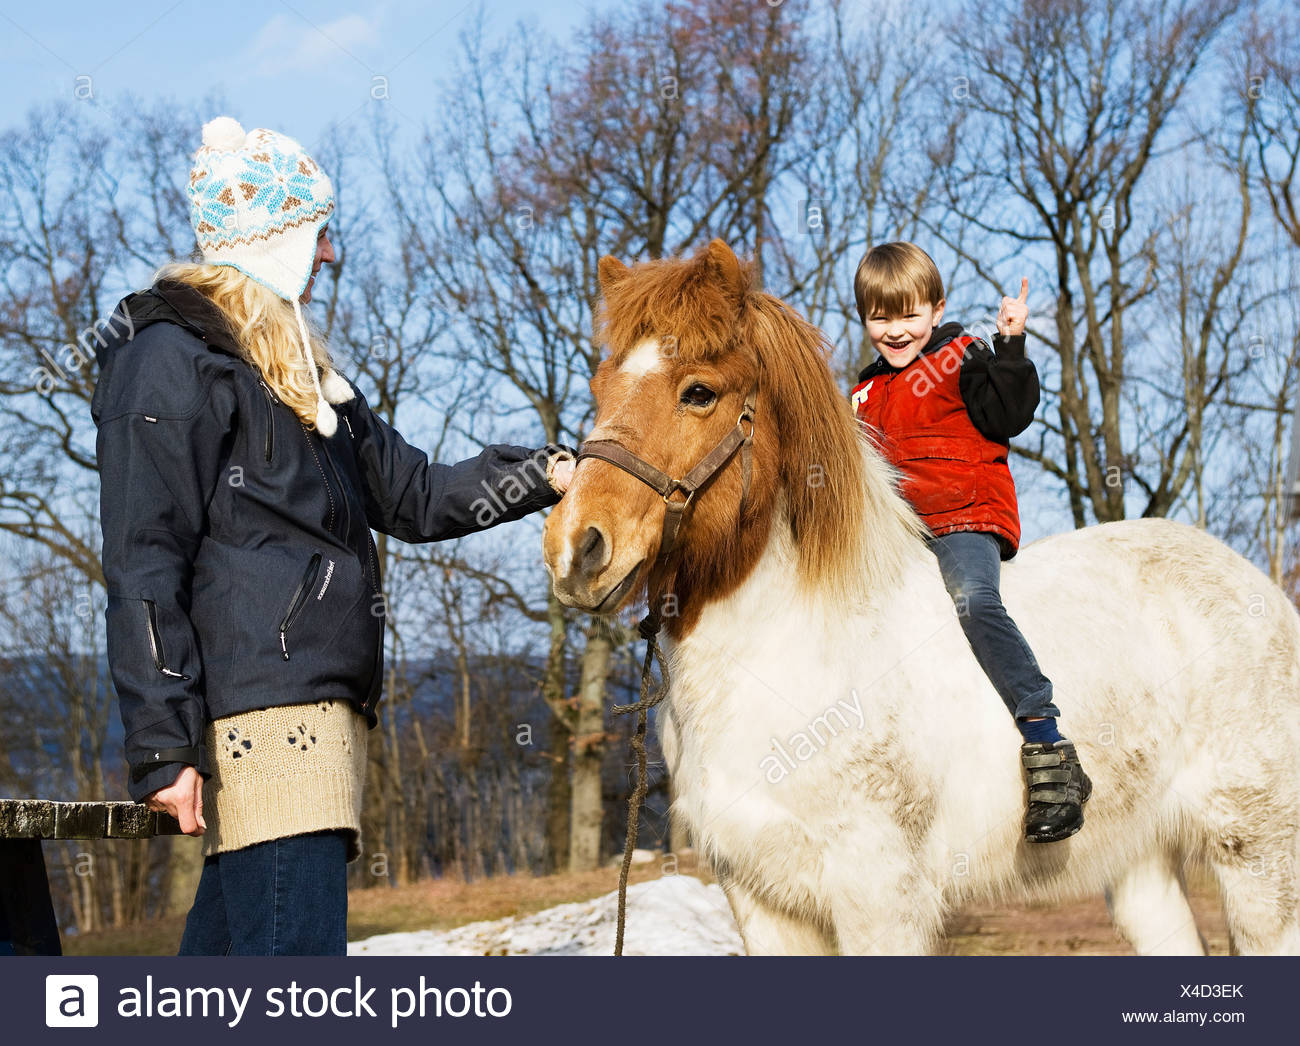 Mother and son with horse - Stock Image